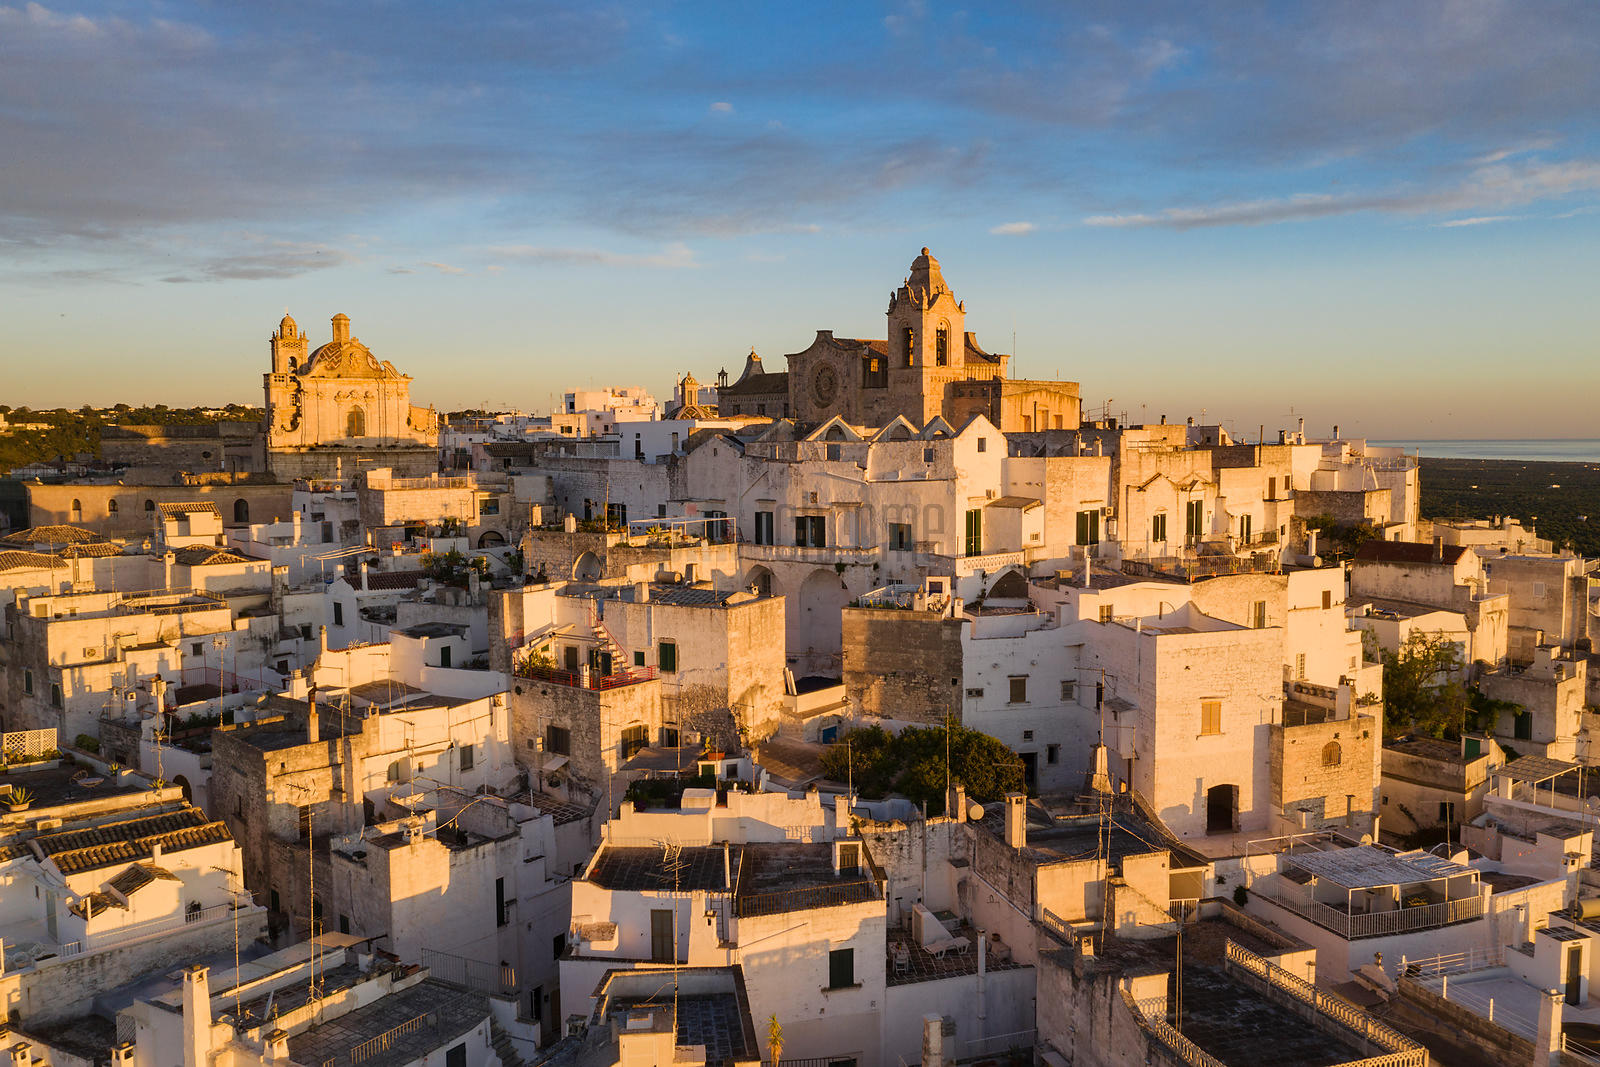 Elevated View of the Old Town of Ostuni at Sunrise